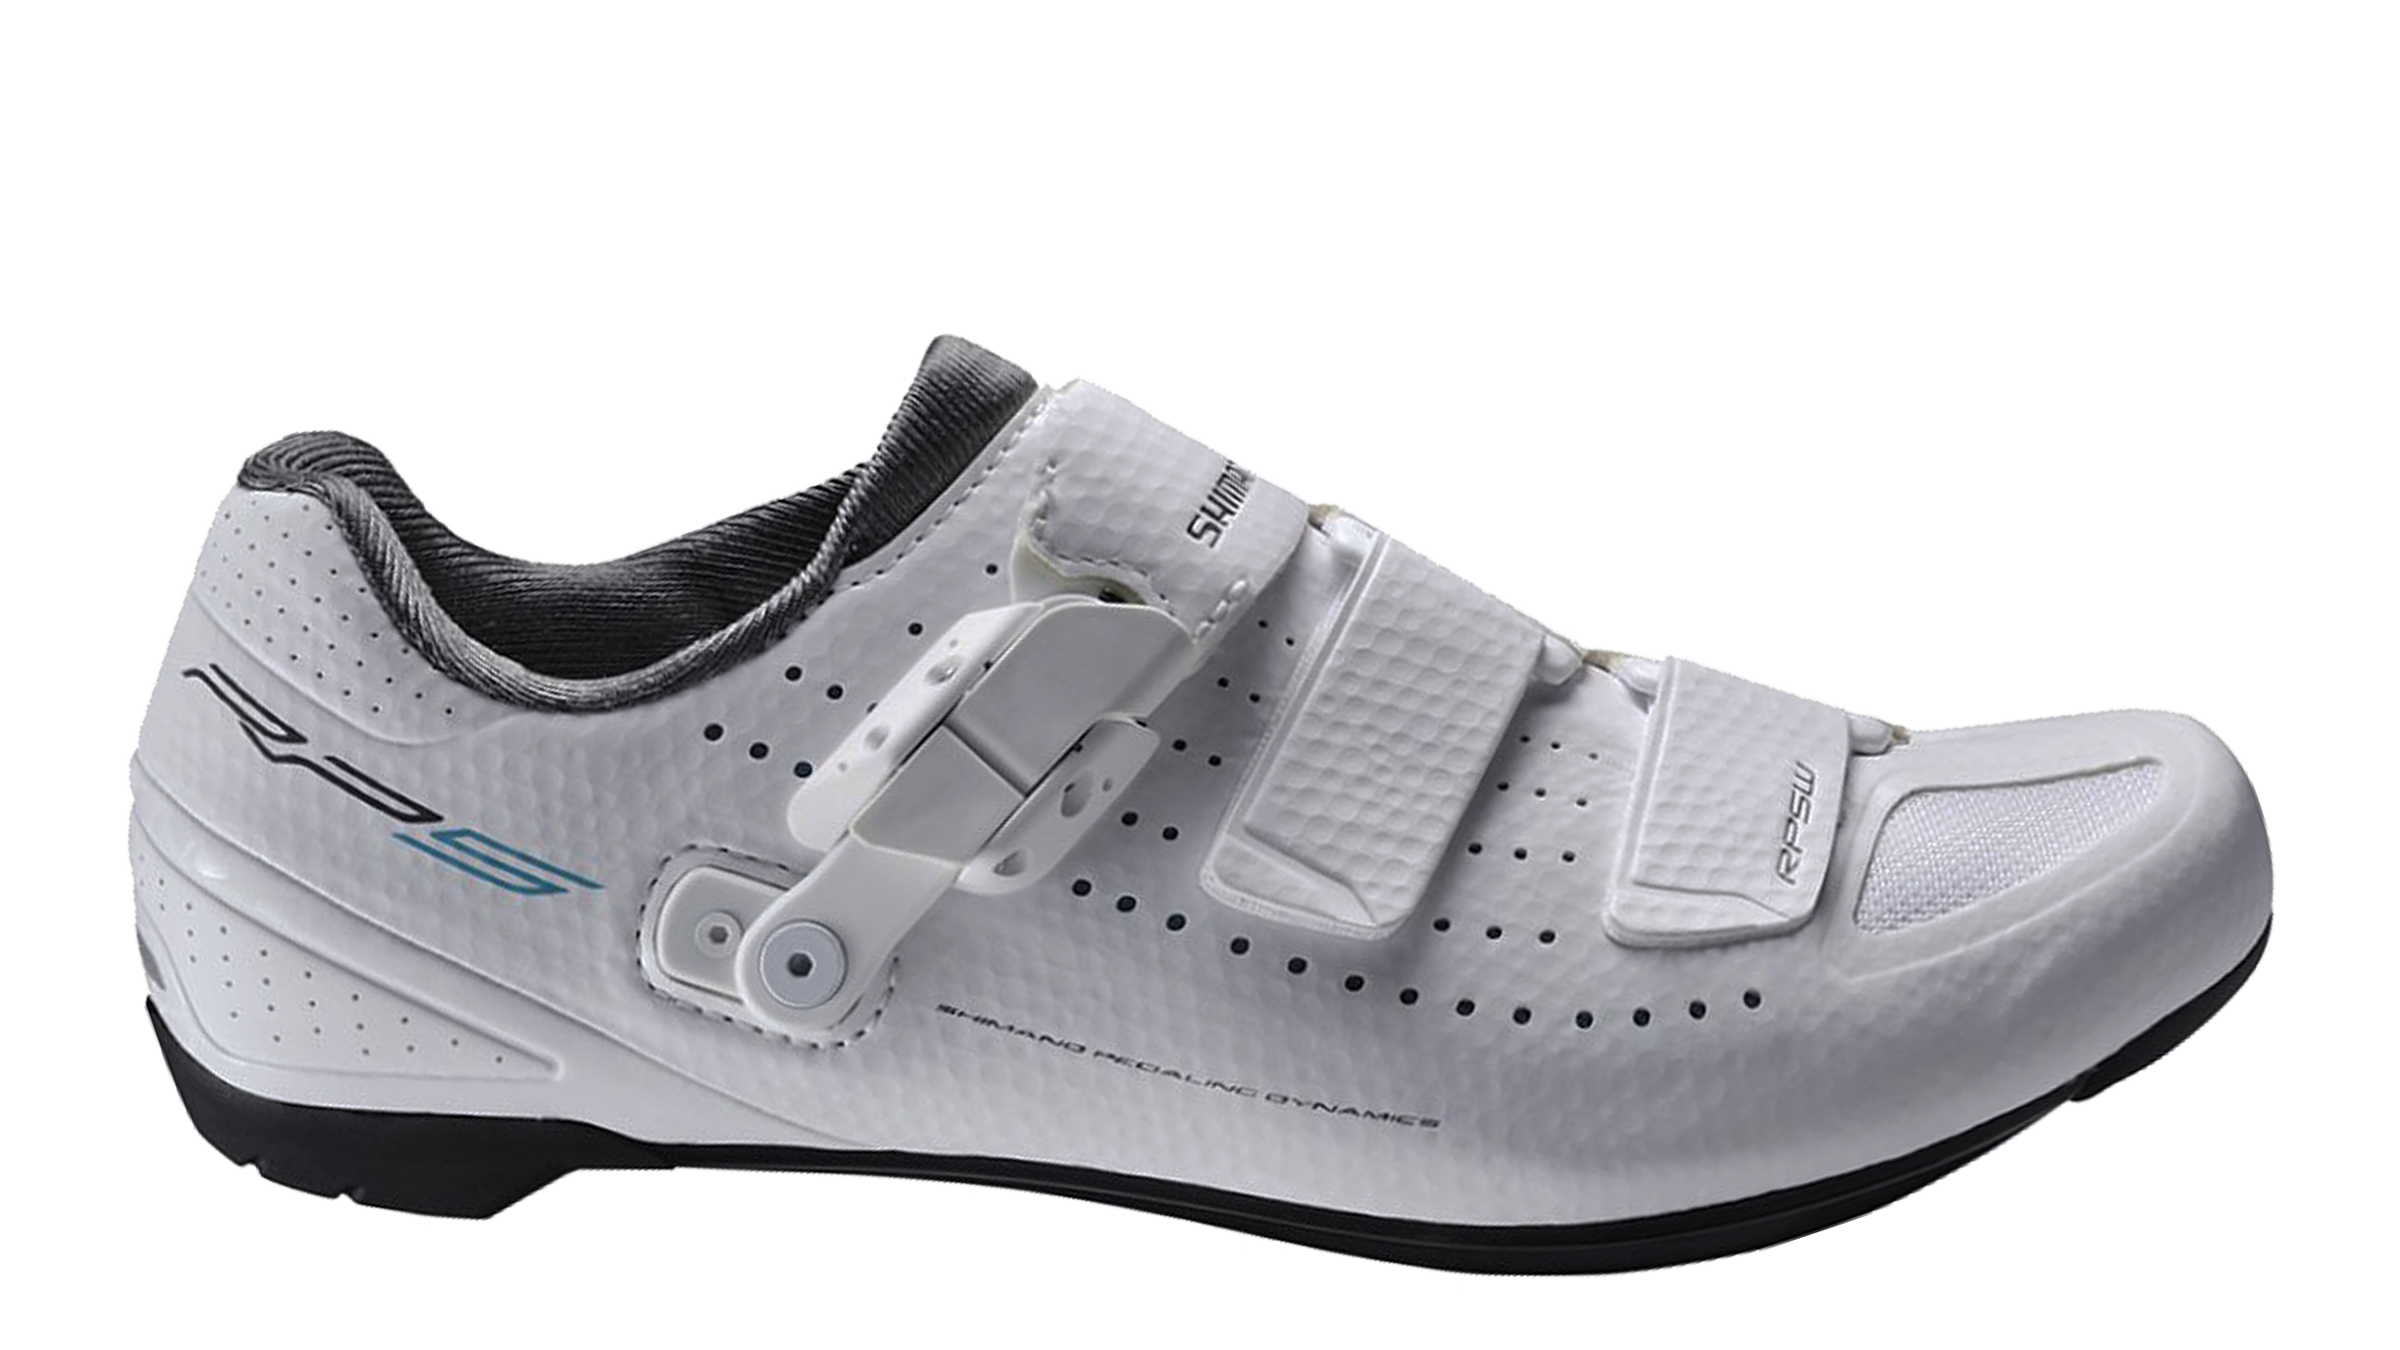 Shimano SH-RP5 Road Shoe - black | Shoes and overlays